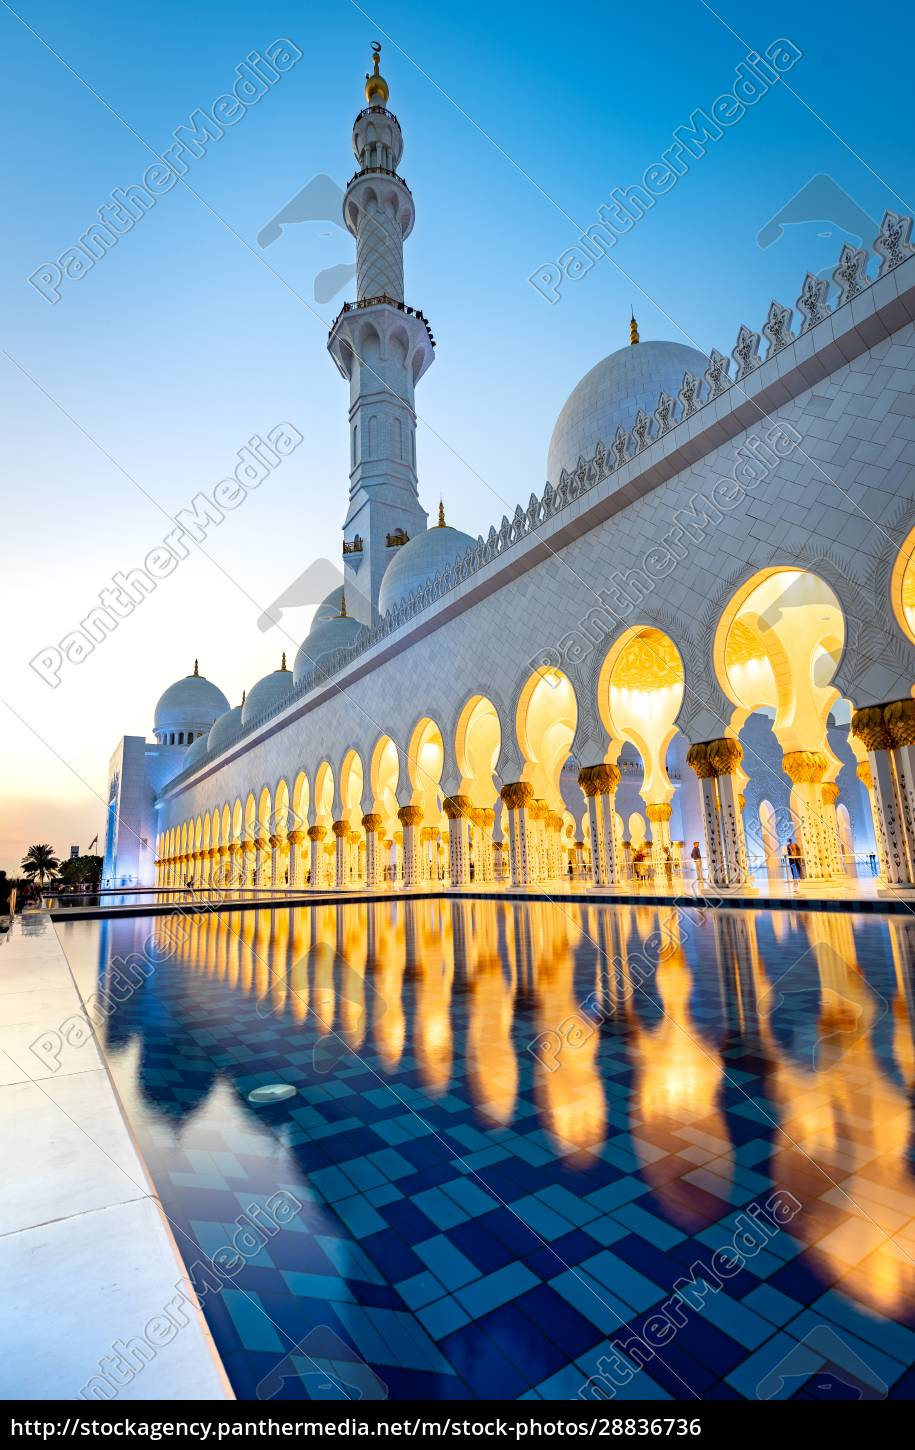 abu, dhabi's, magnificent, grand, mosque, lit - 28836736